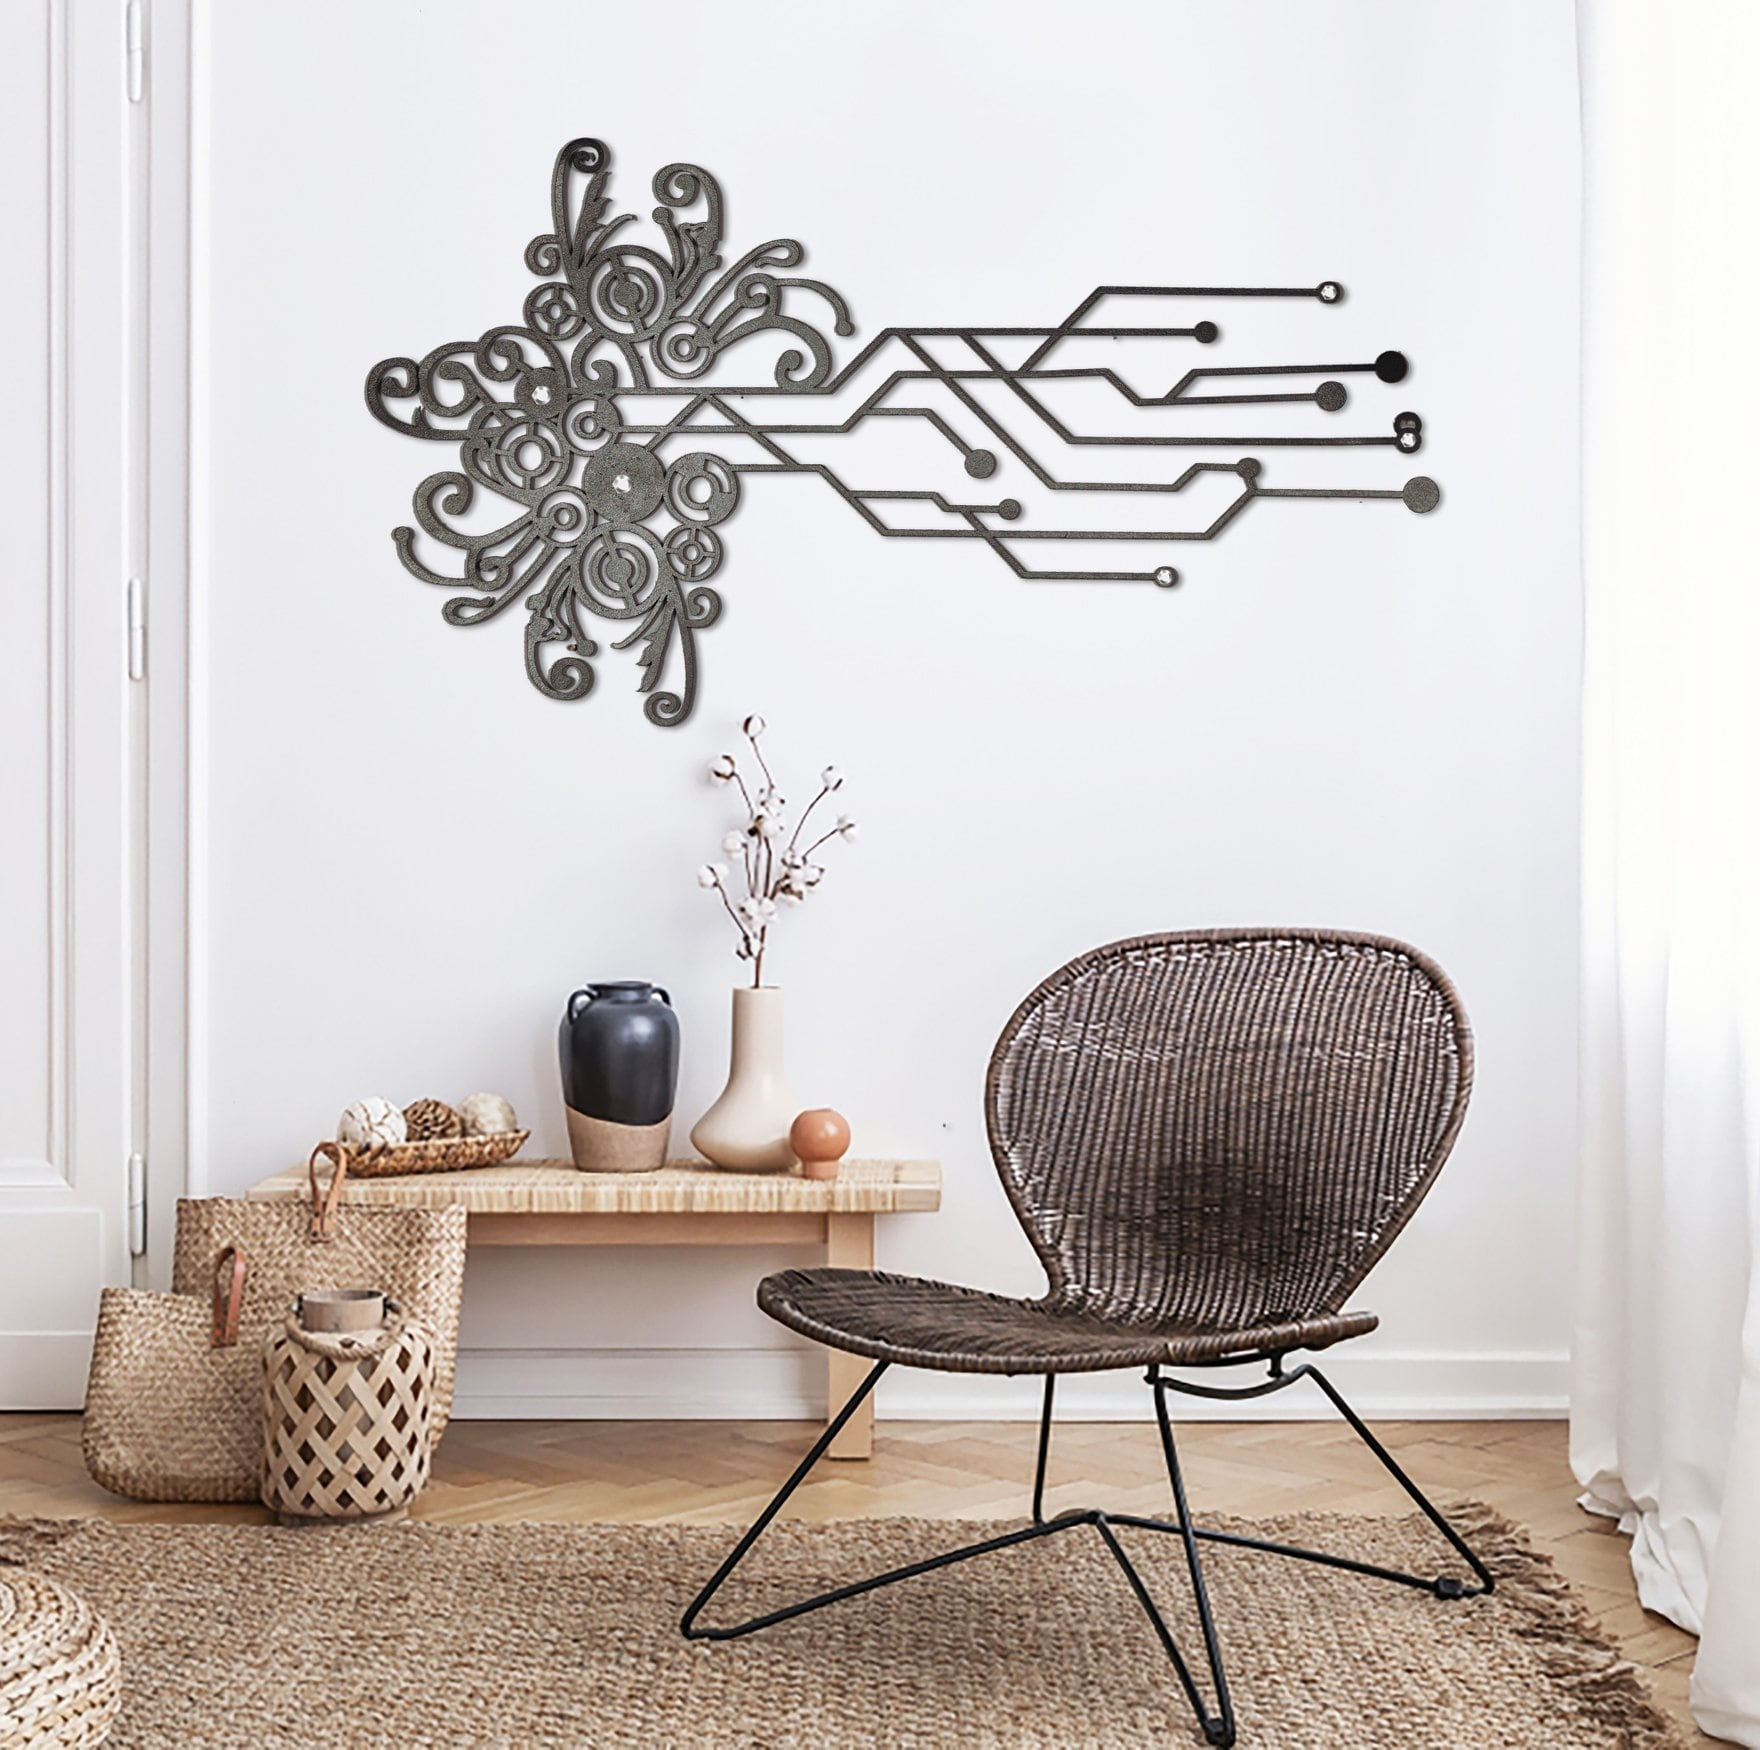 Futurist metal wall decoration for a stylish living room